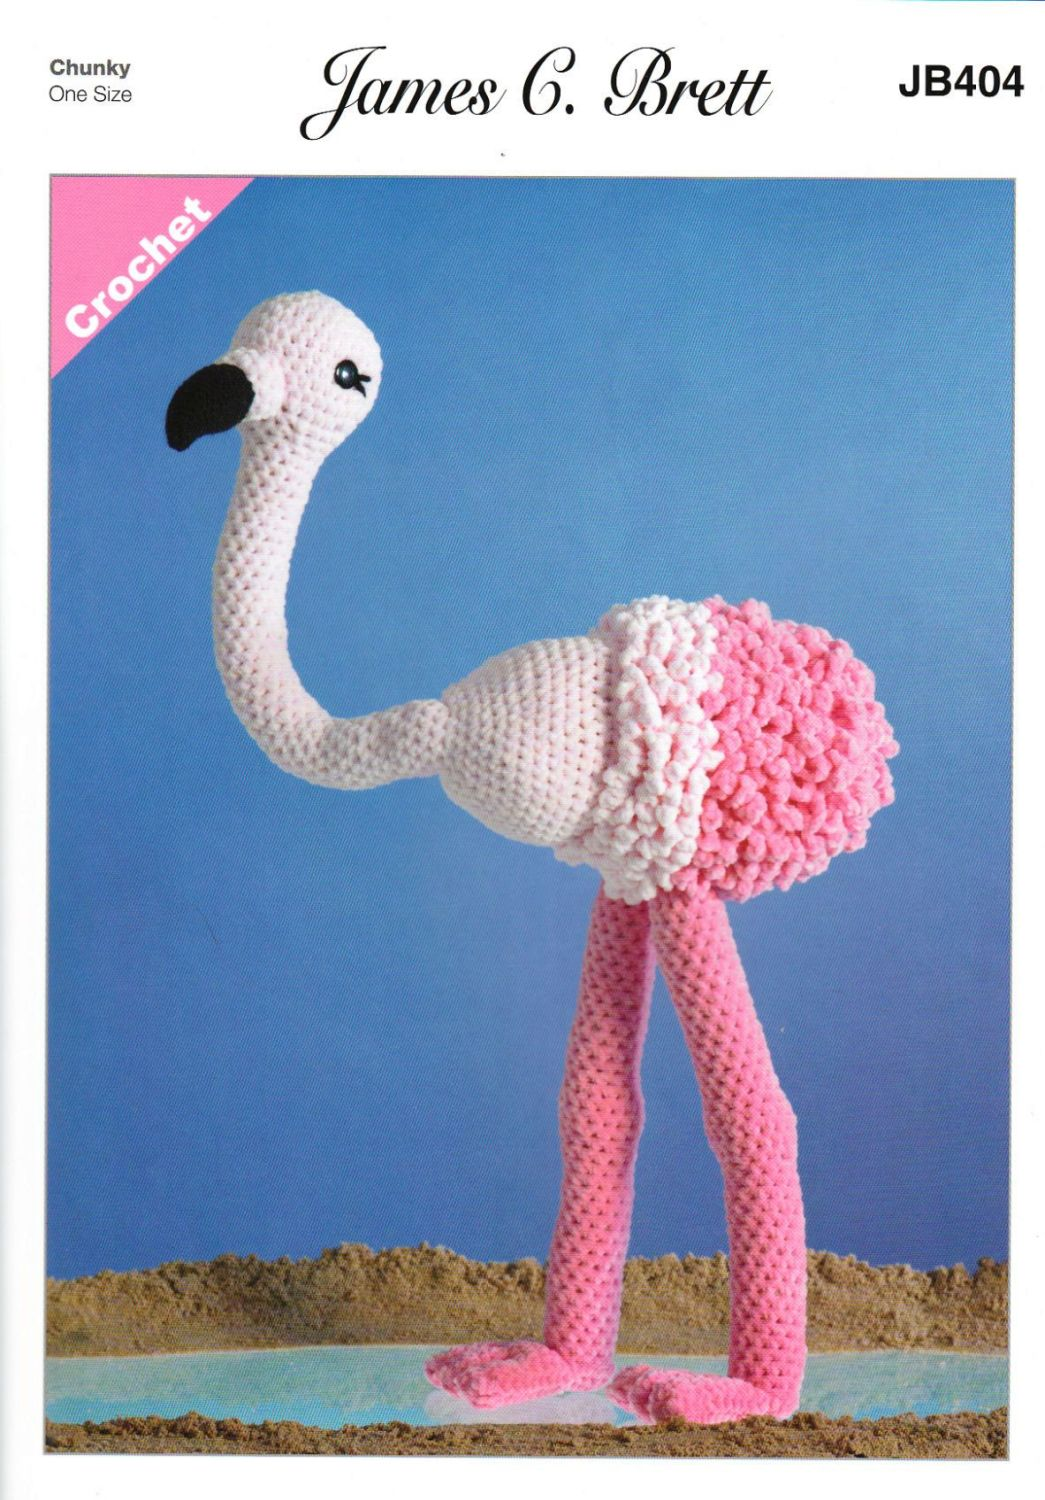 Flo Flamingo Crochet Pattern